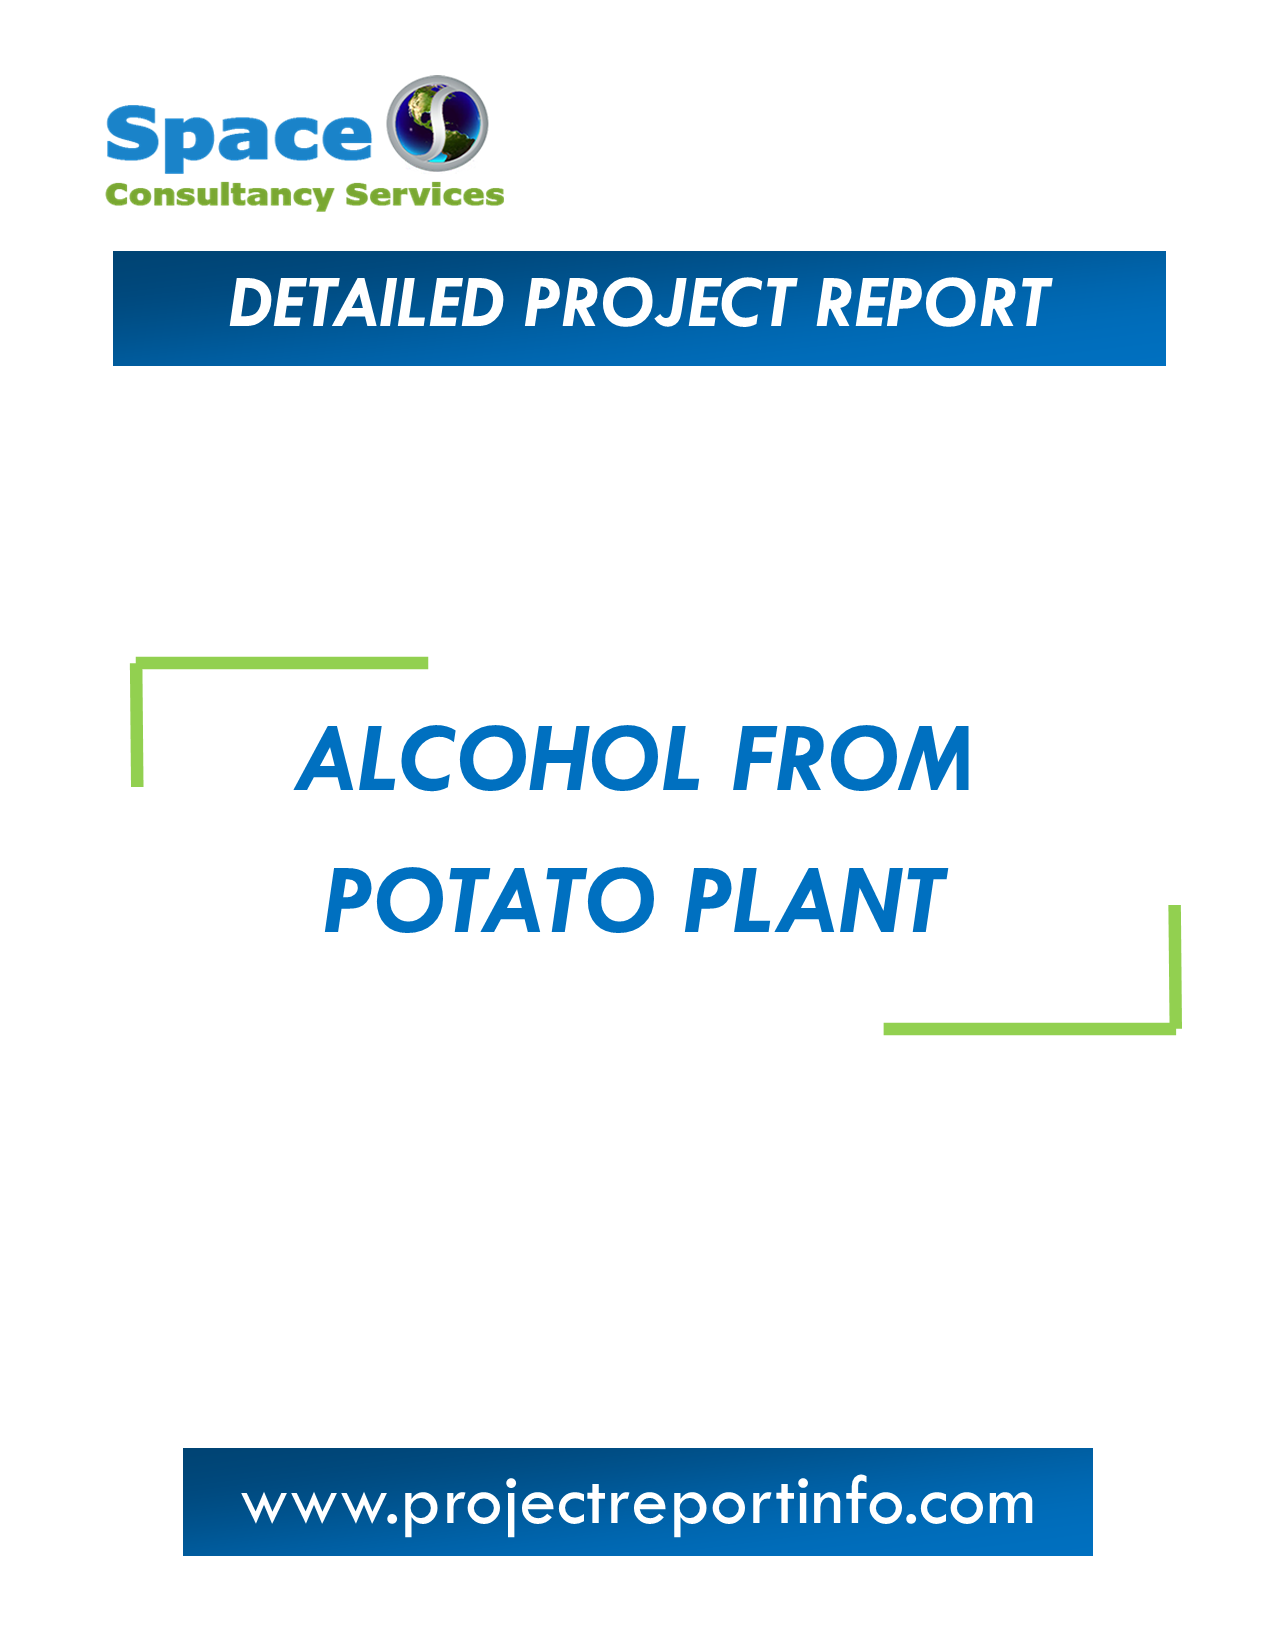 Project Report on Alcohol from Potato Plant